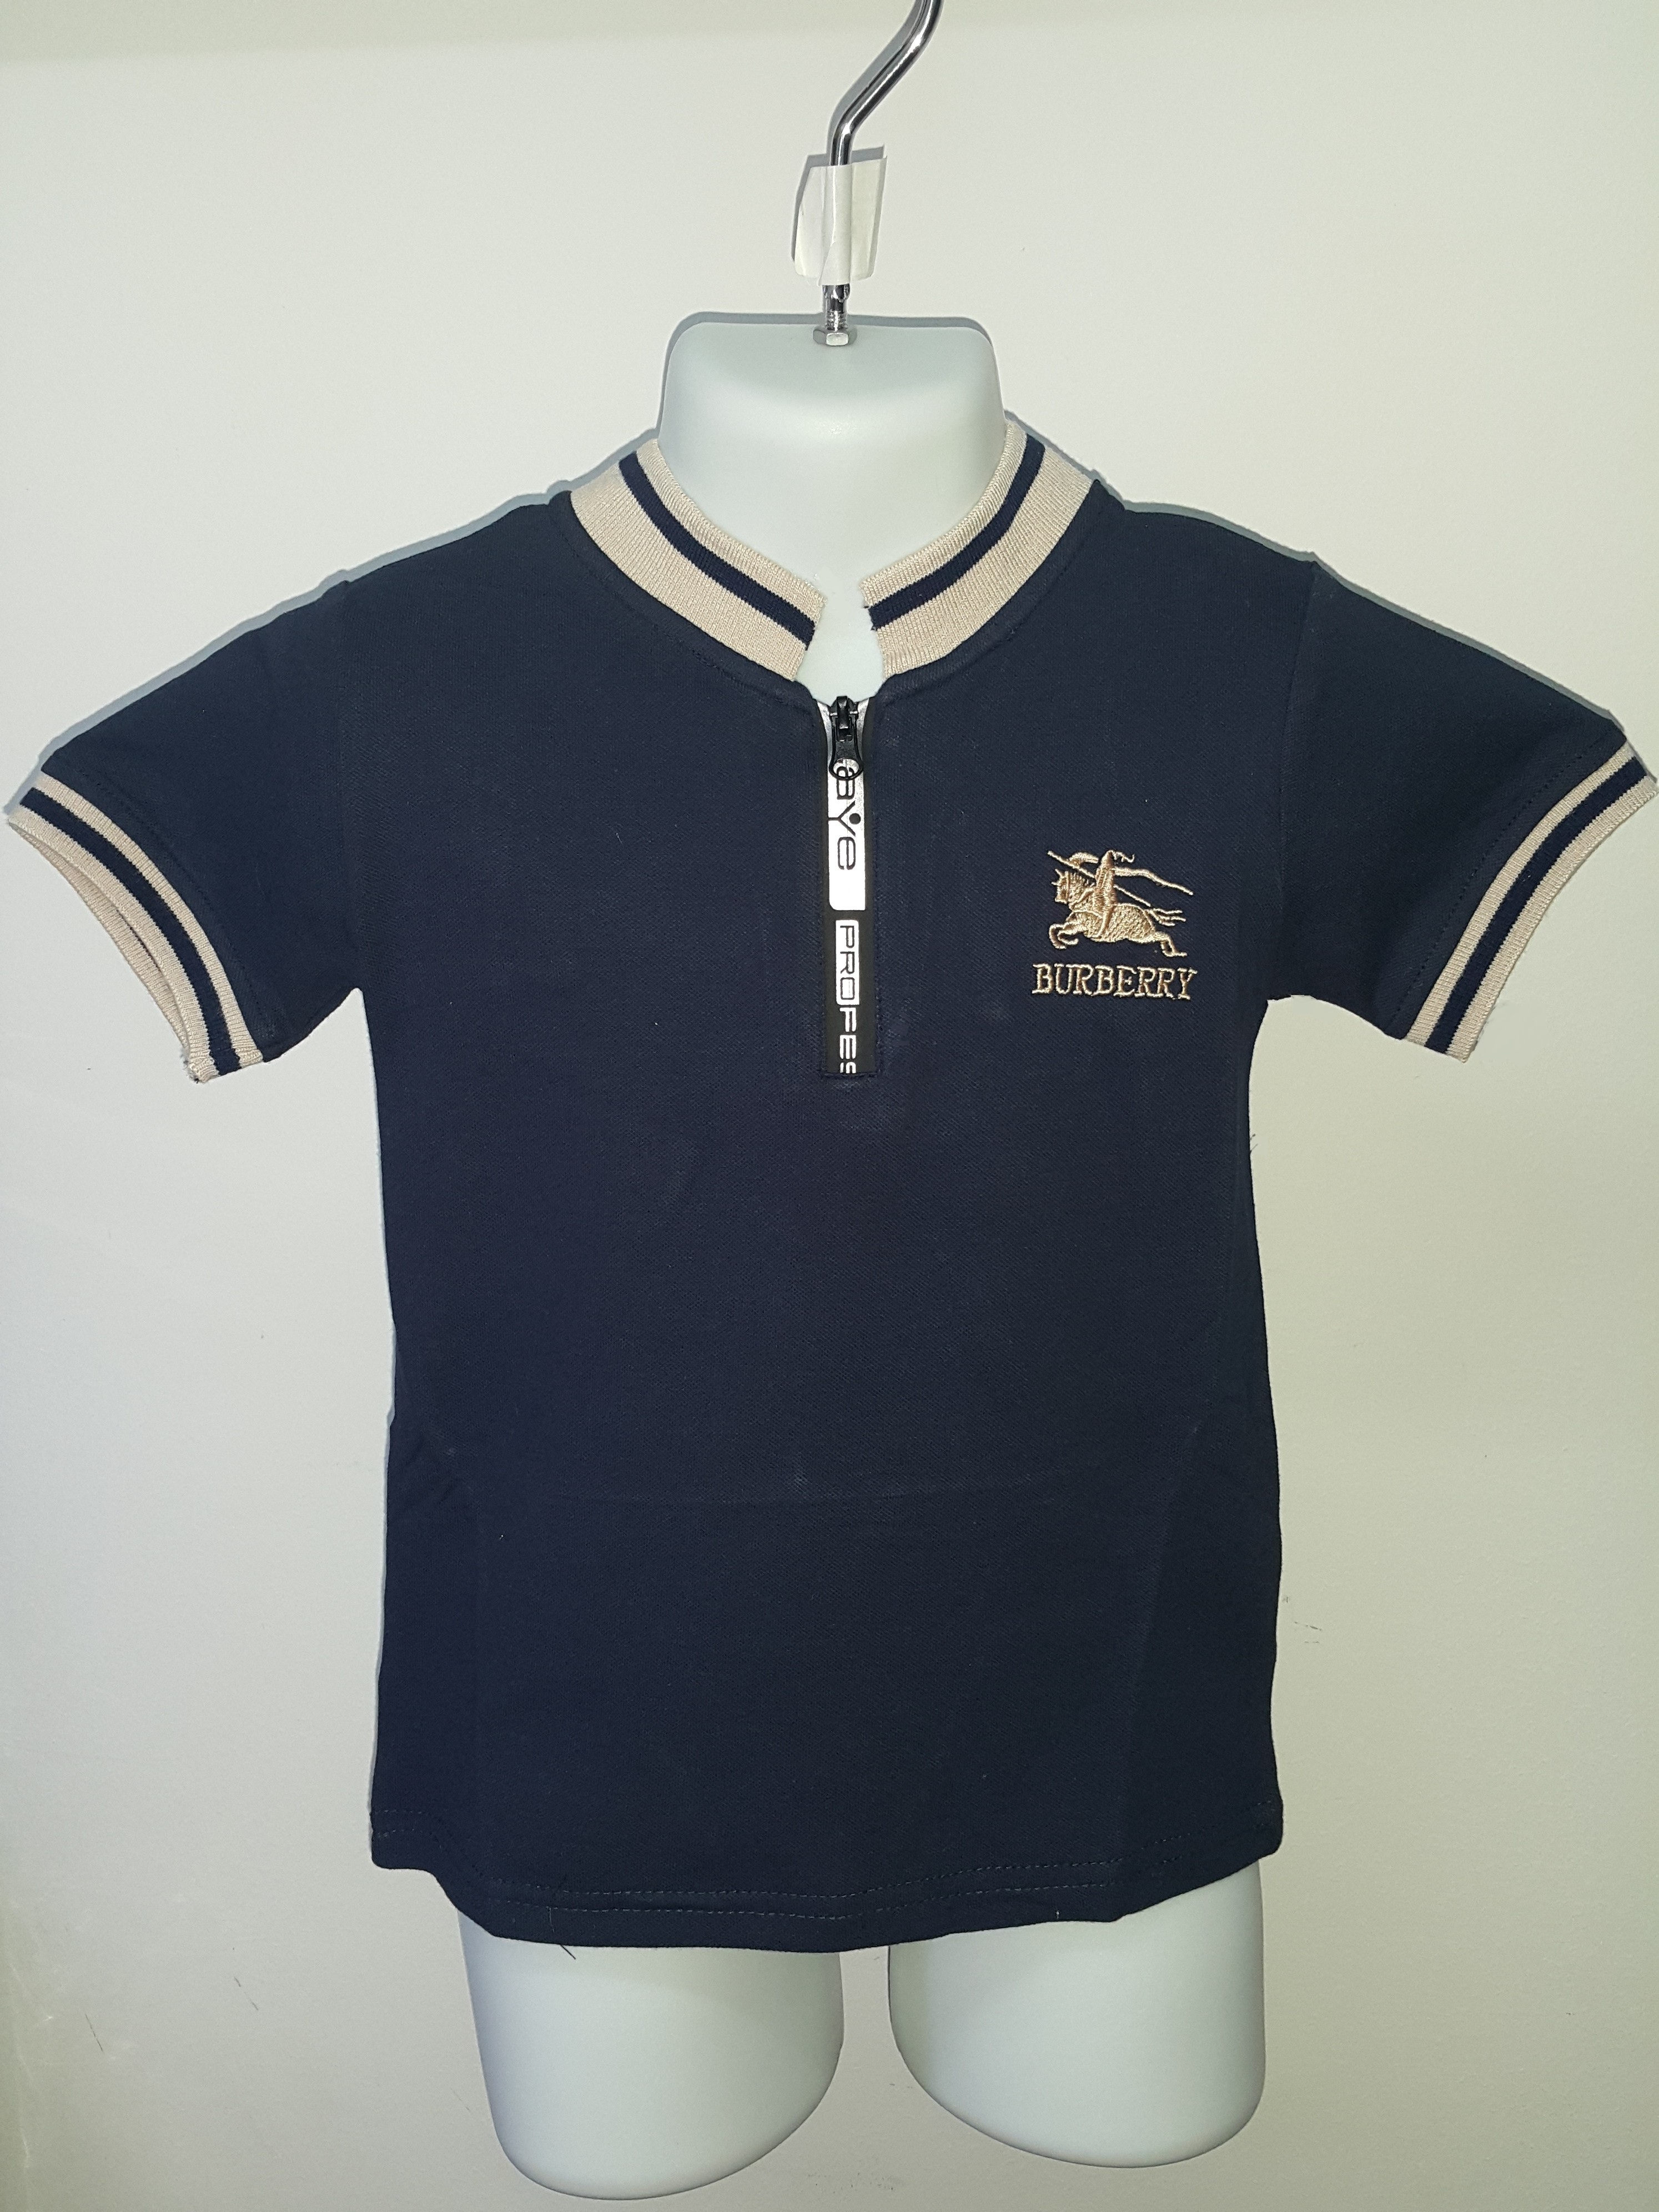 9ba5d1d75432 BURBERRY T-SHIRT FOR KIDS CS340 NAVY BLUE